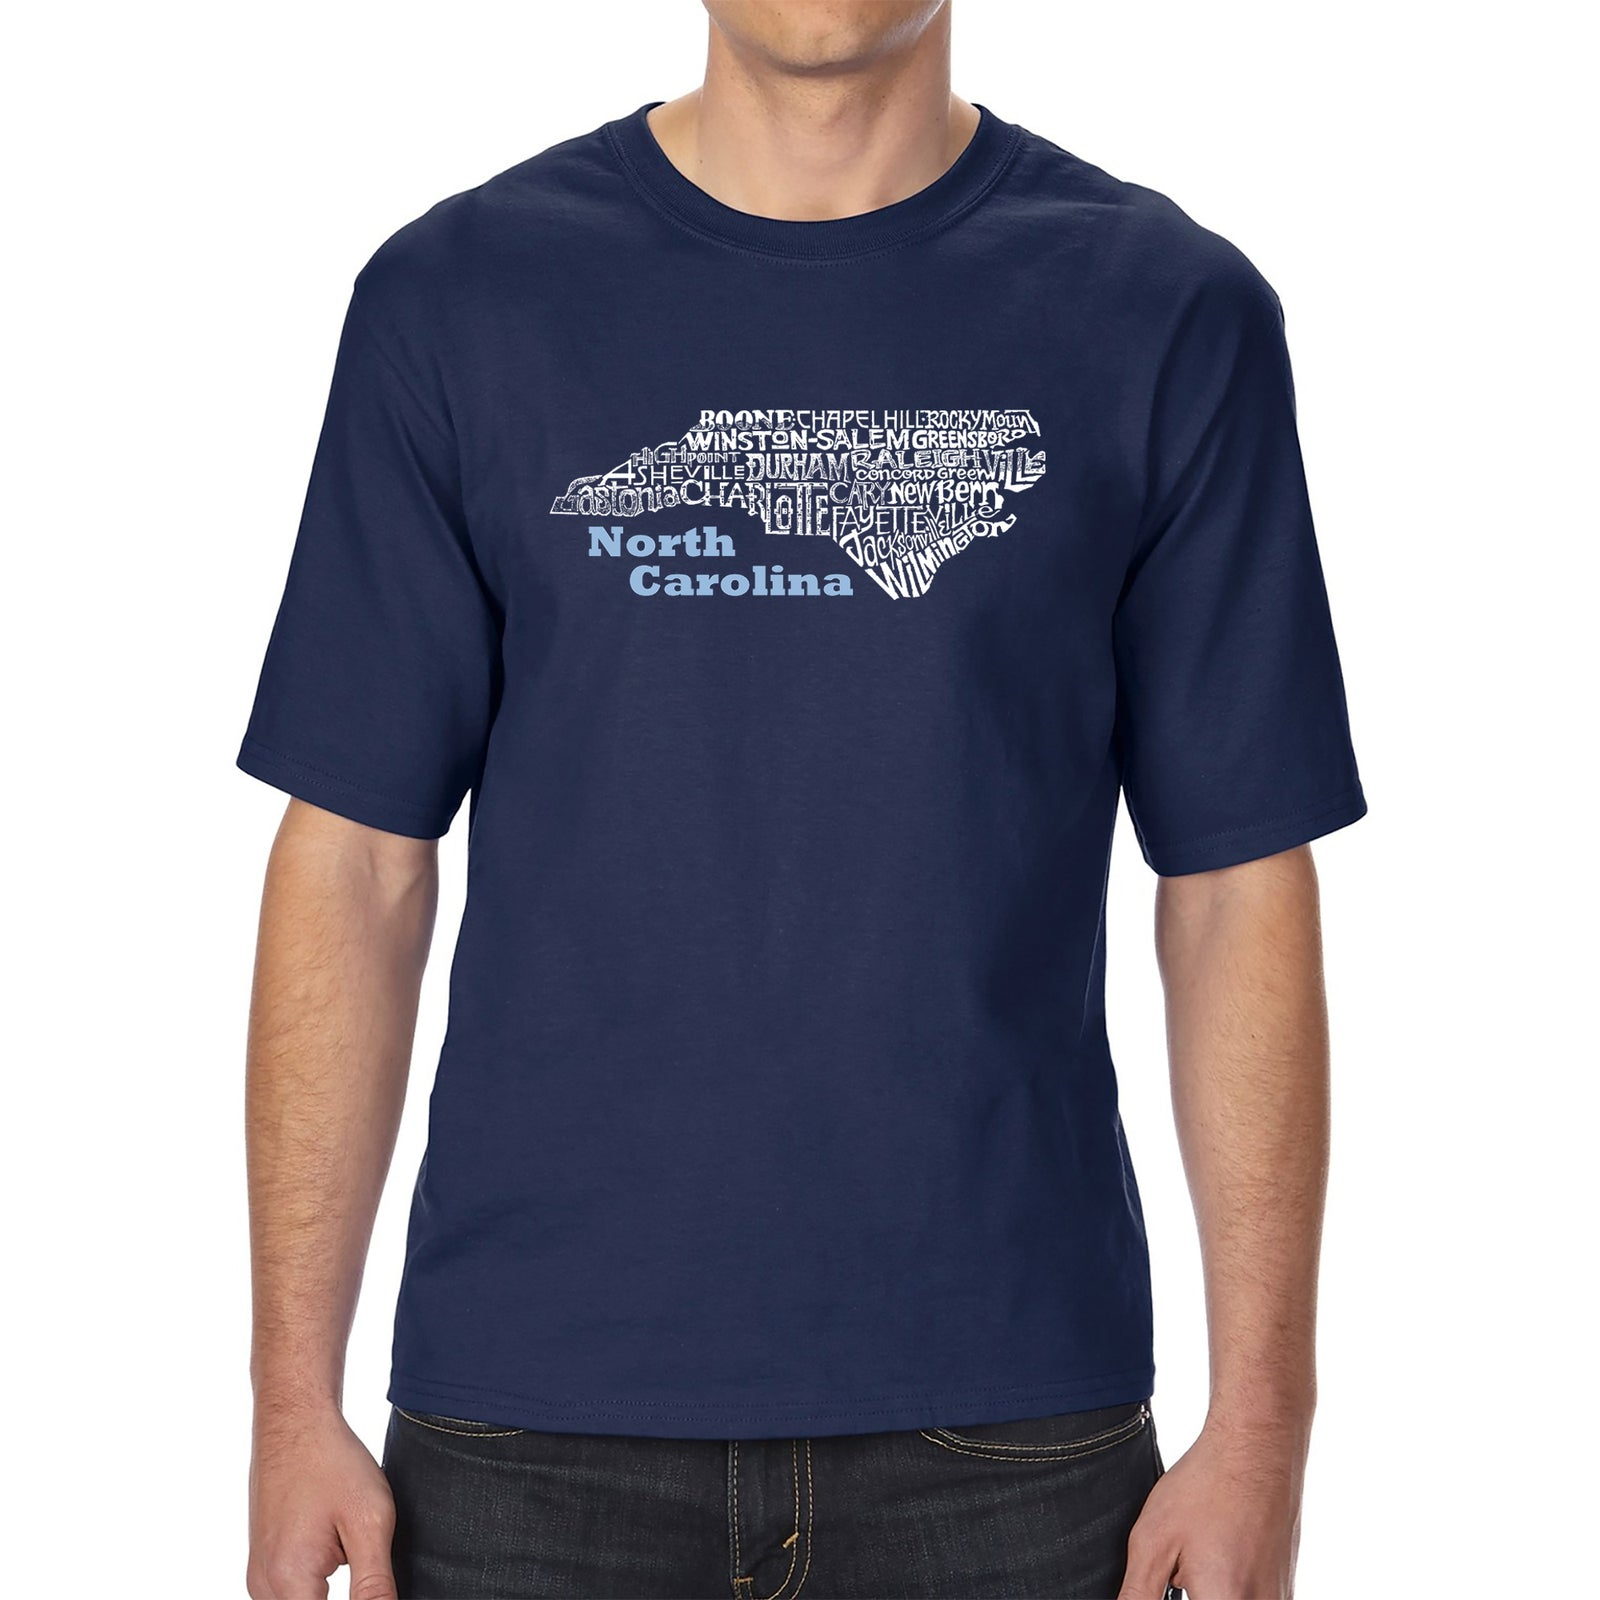 Men's Tall and Long Word Art T-shirt - North Carolina